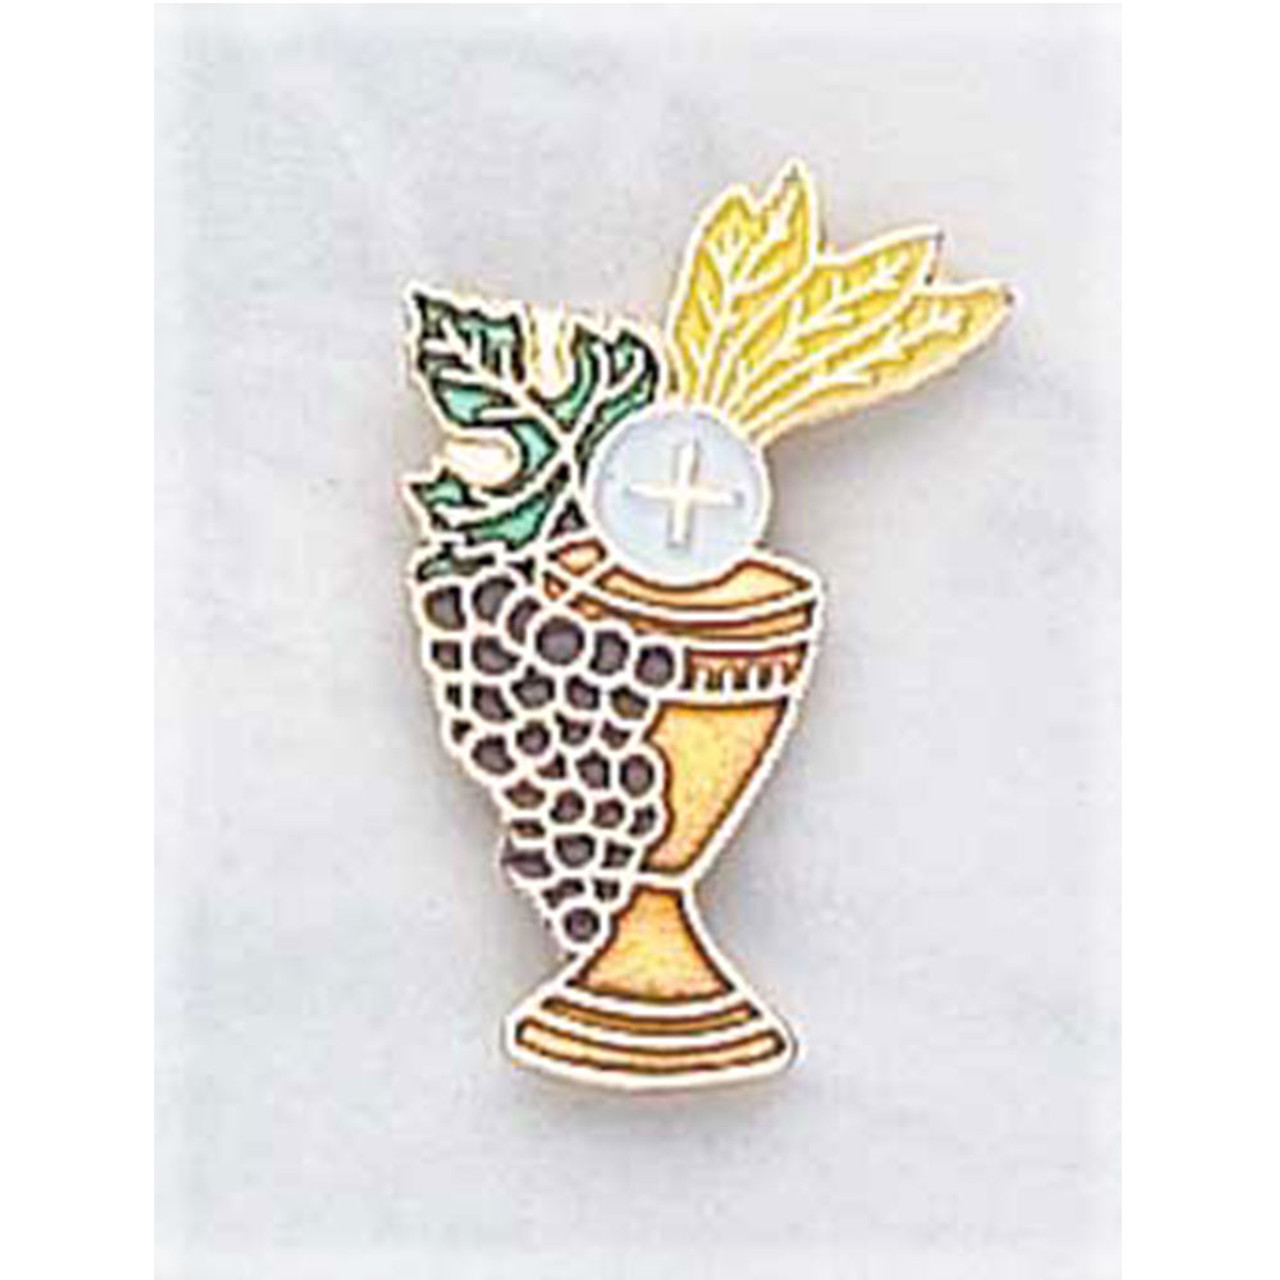 First Communion Lapel Pin with Enameled Chalice and Host